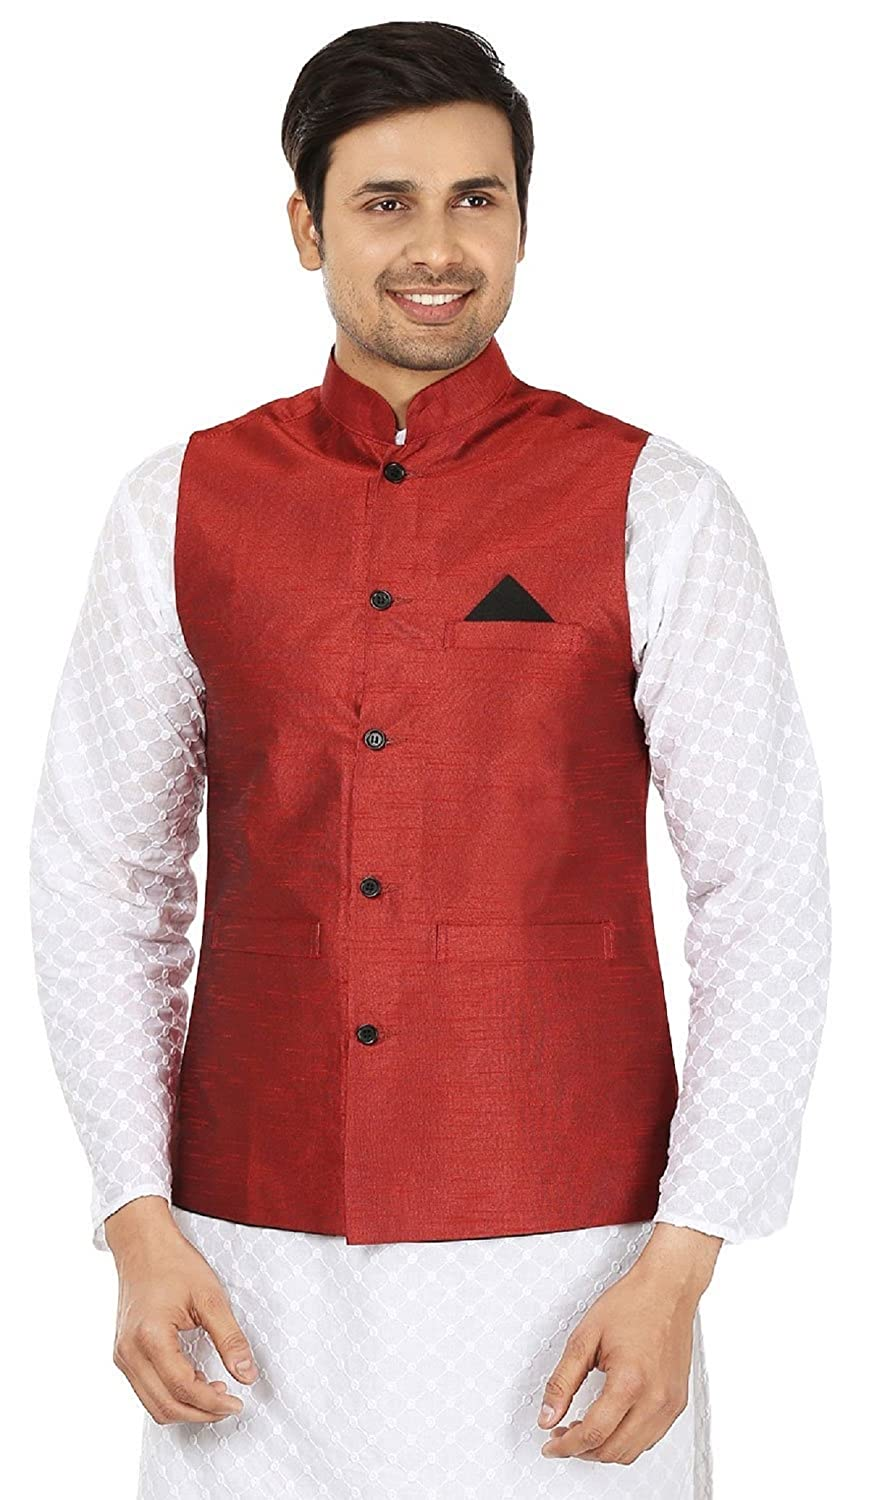 Royal Kurta Men's Traditonal Silk Blended Nehru Waistcoat Jacket ROYAL-2121-BLACK-BUNDI-36-$P